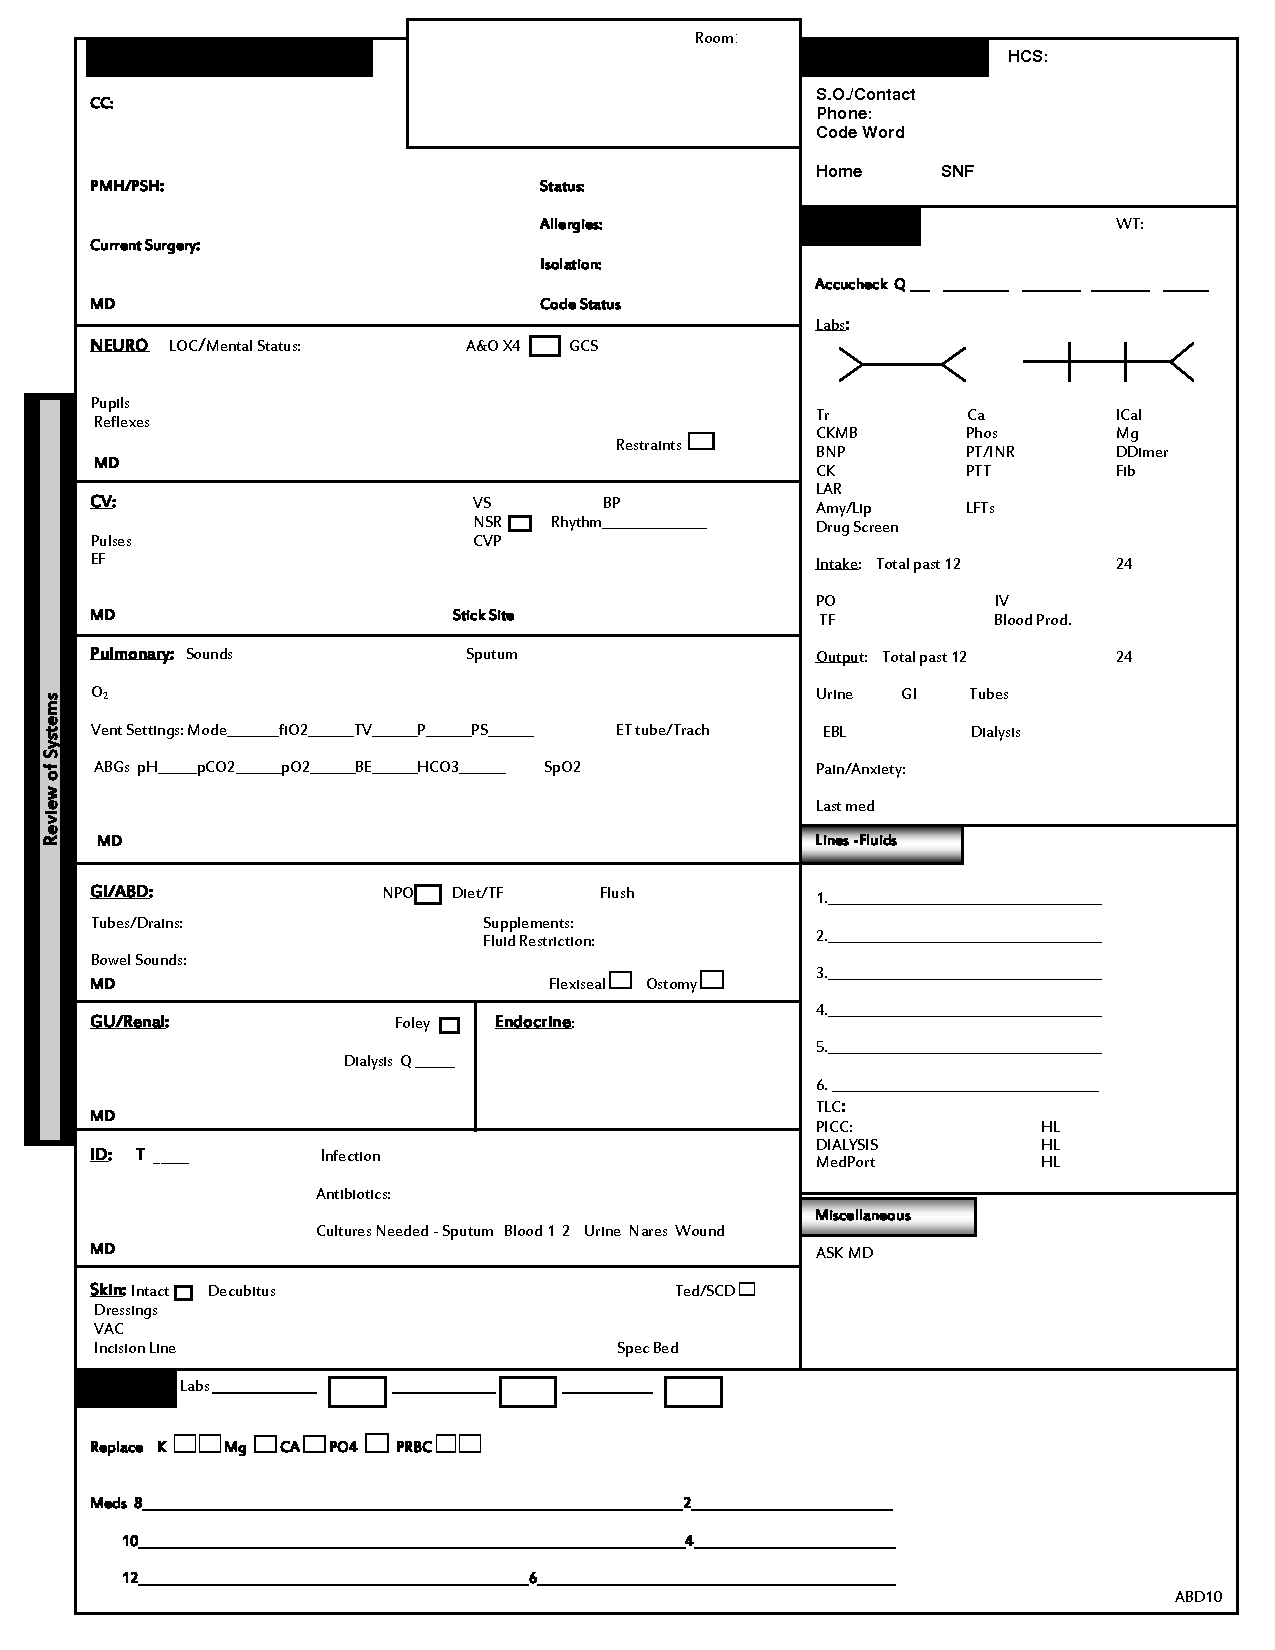 Icu Nurse Report Sheet Template | nurse | Pinterest